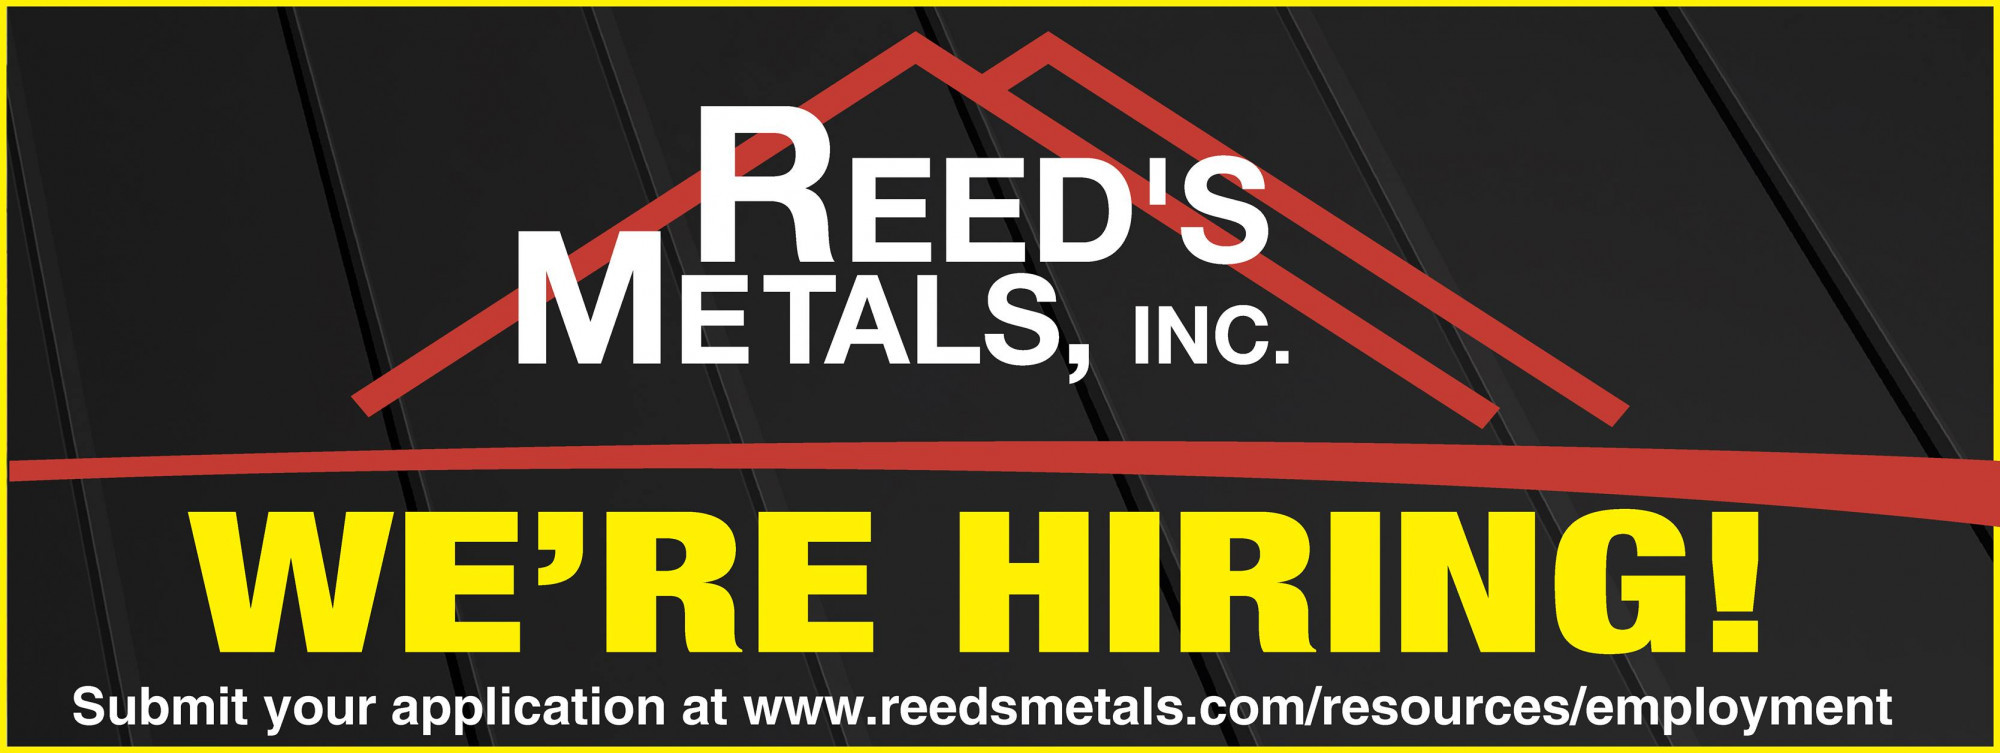 Receptionist - Careers with Reed's Metals - Reed's Metals